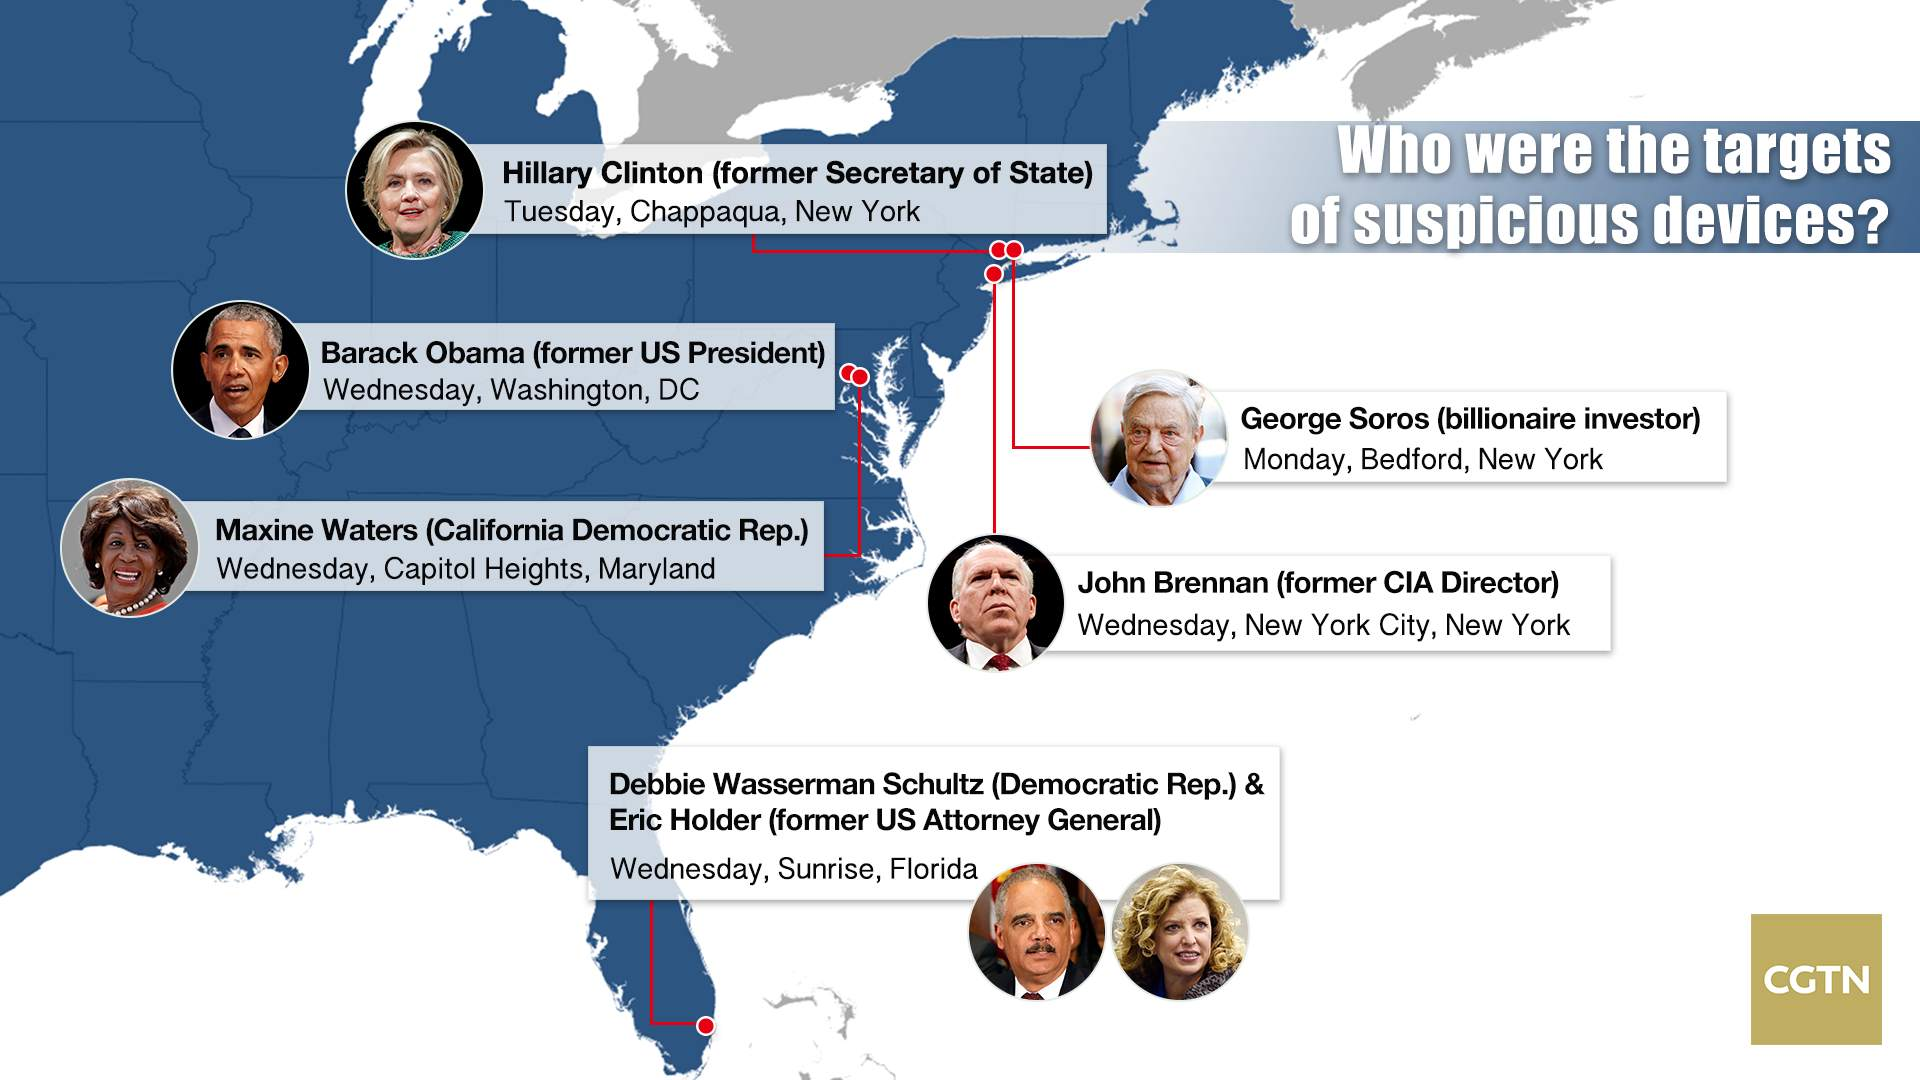 Who were the targets of suspicious packages in the US?